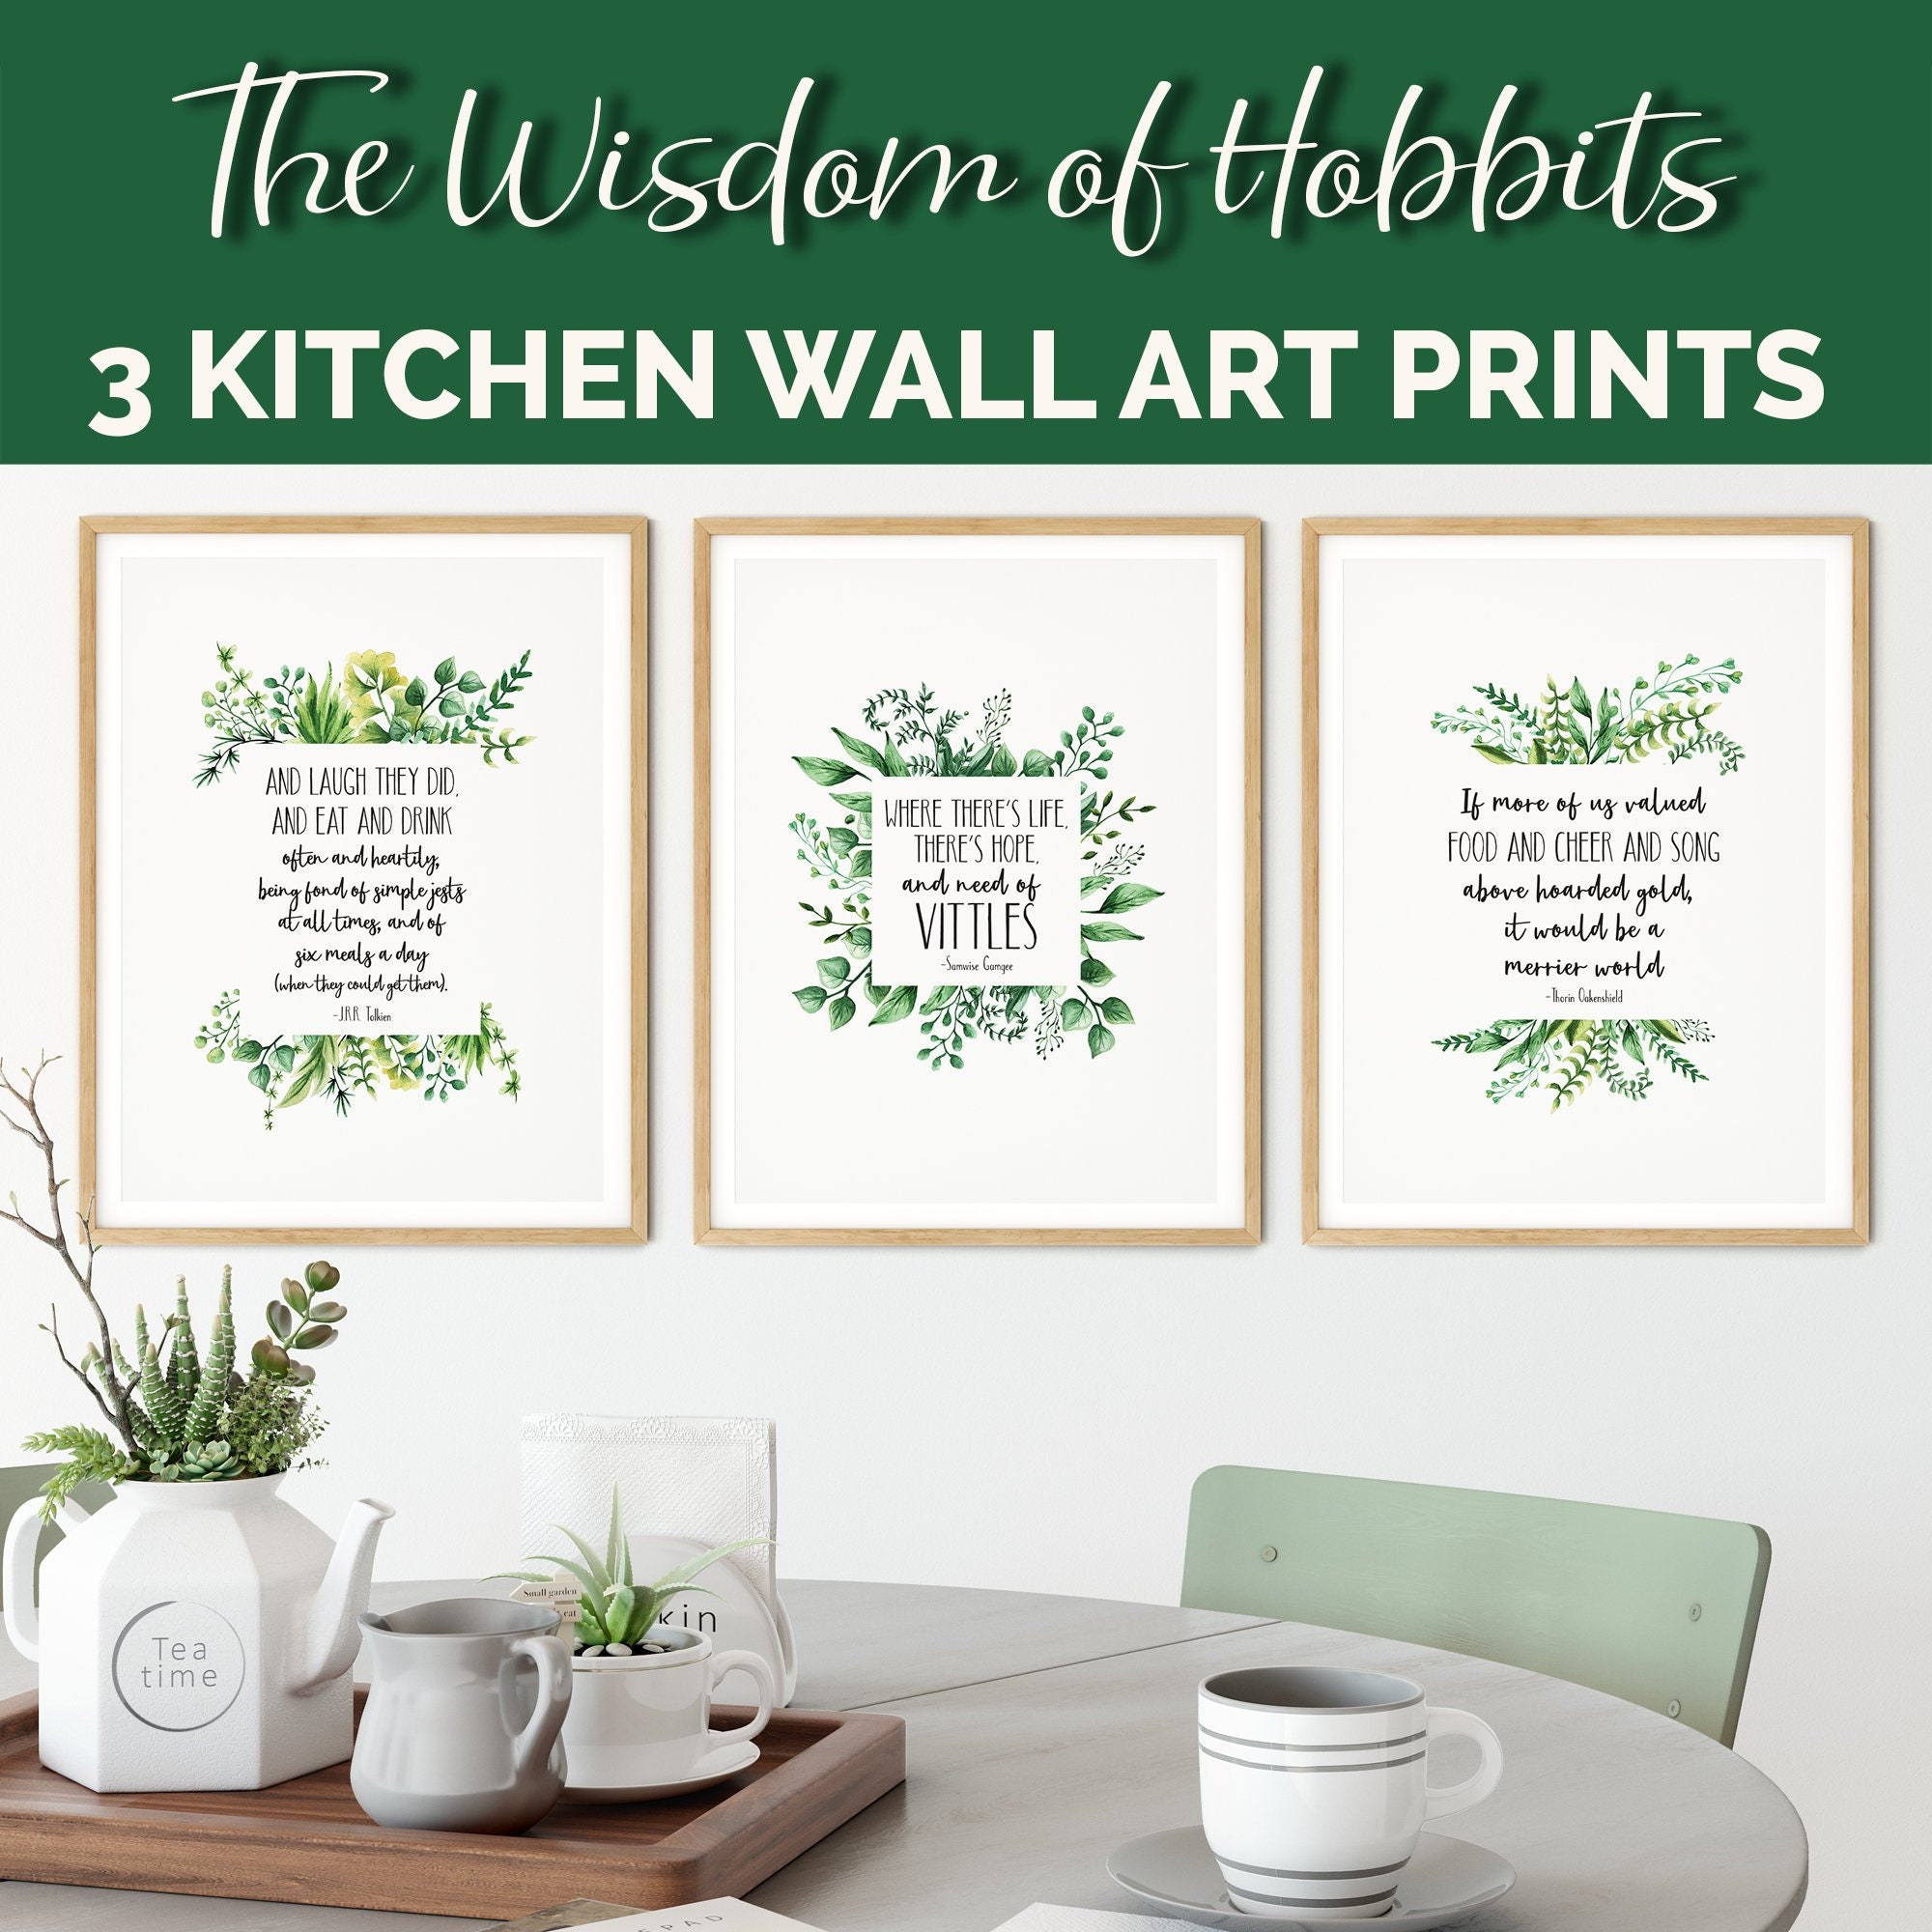 Set of 3 Tolkien Quotes with Herbs Graphics for the Kitchen  Sam, Thorin,  Hobbits on food, cheer and song, vittles, drink, 6 meals a day